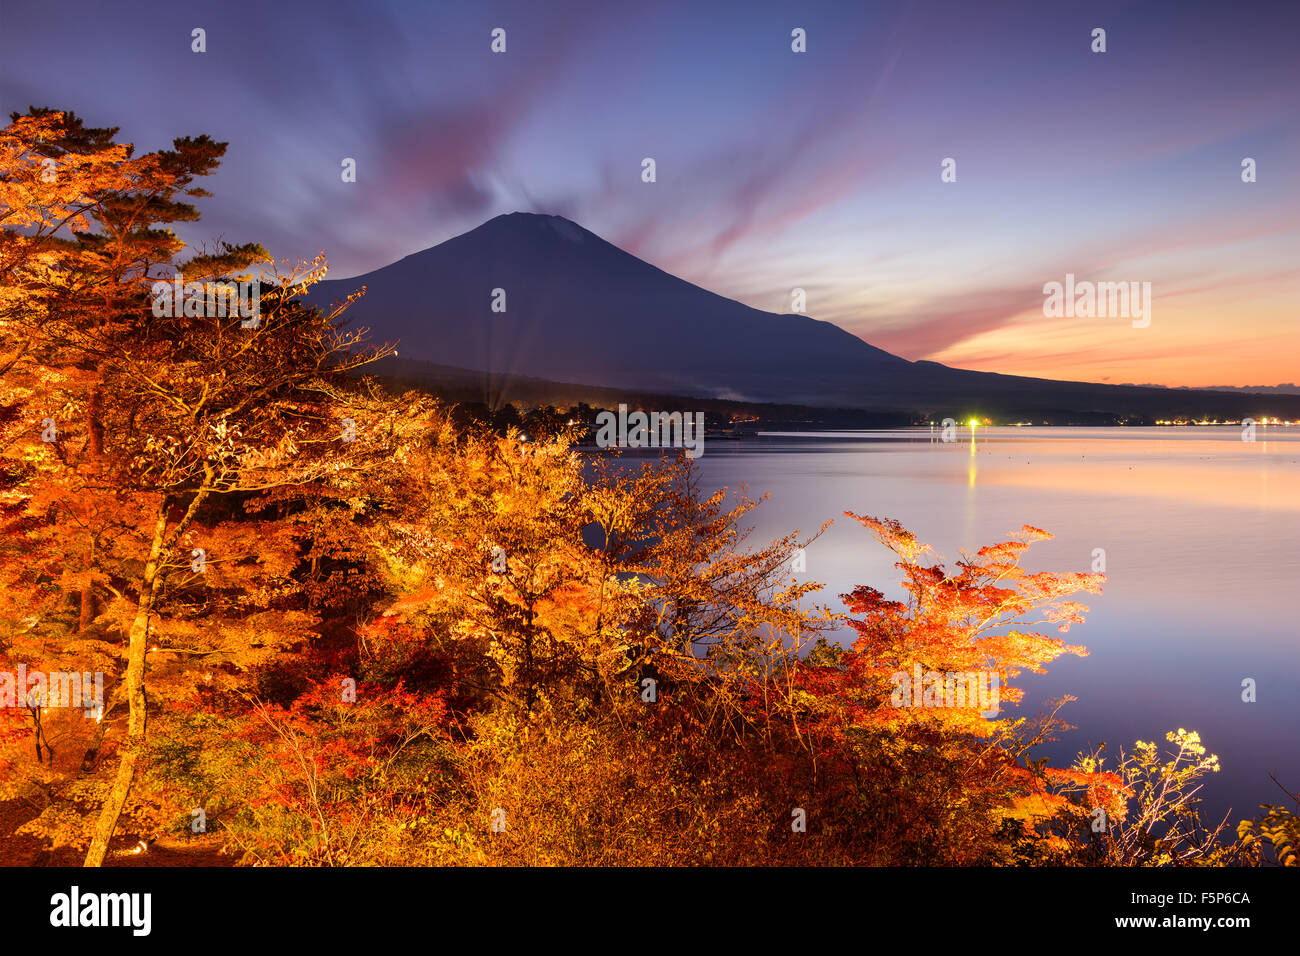 Fuji Mountain, Japan from Yamanaka Lake in the autumn. - Stock Image